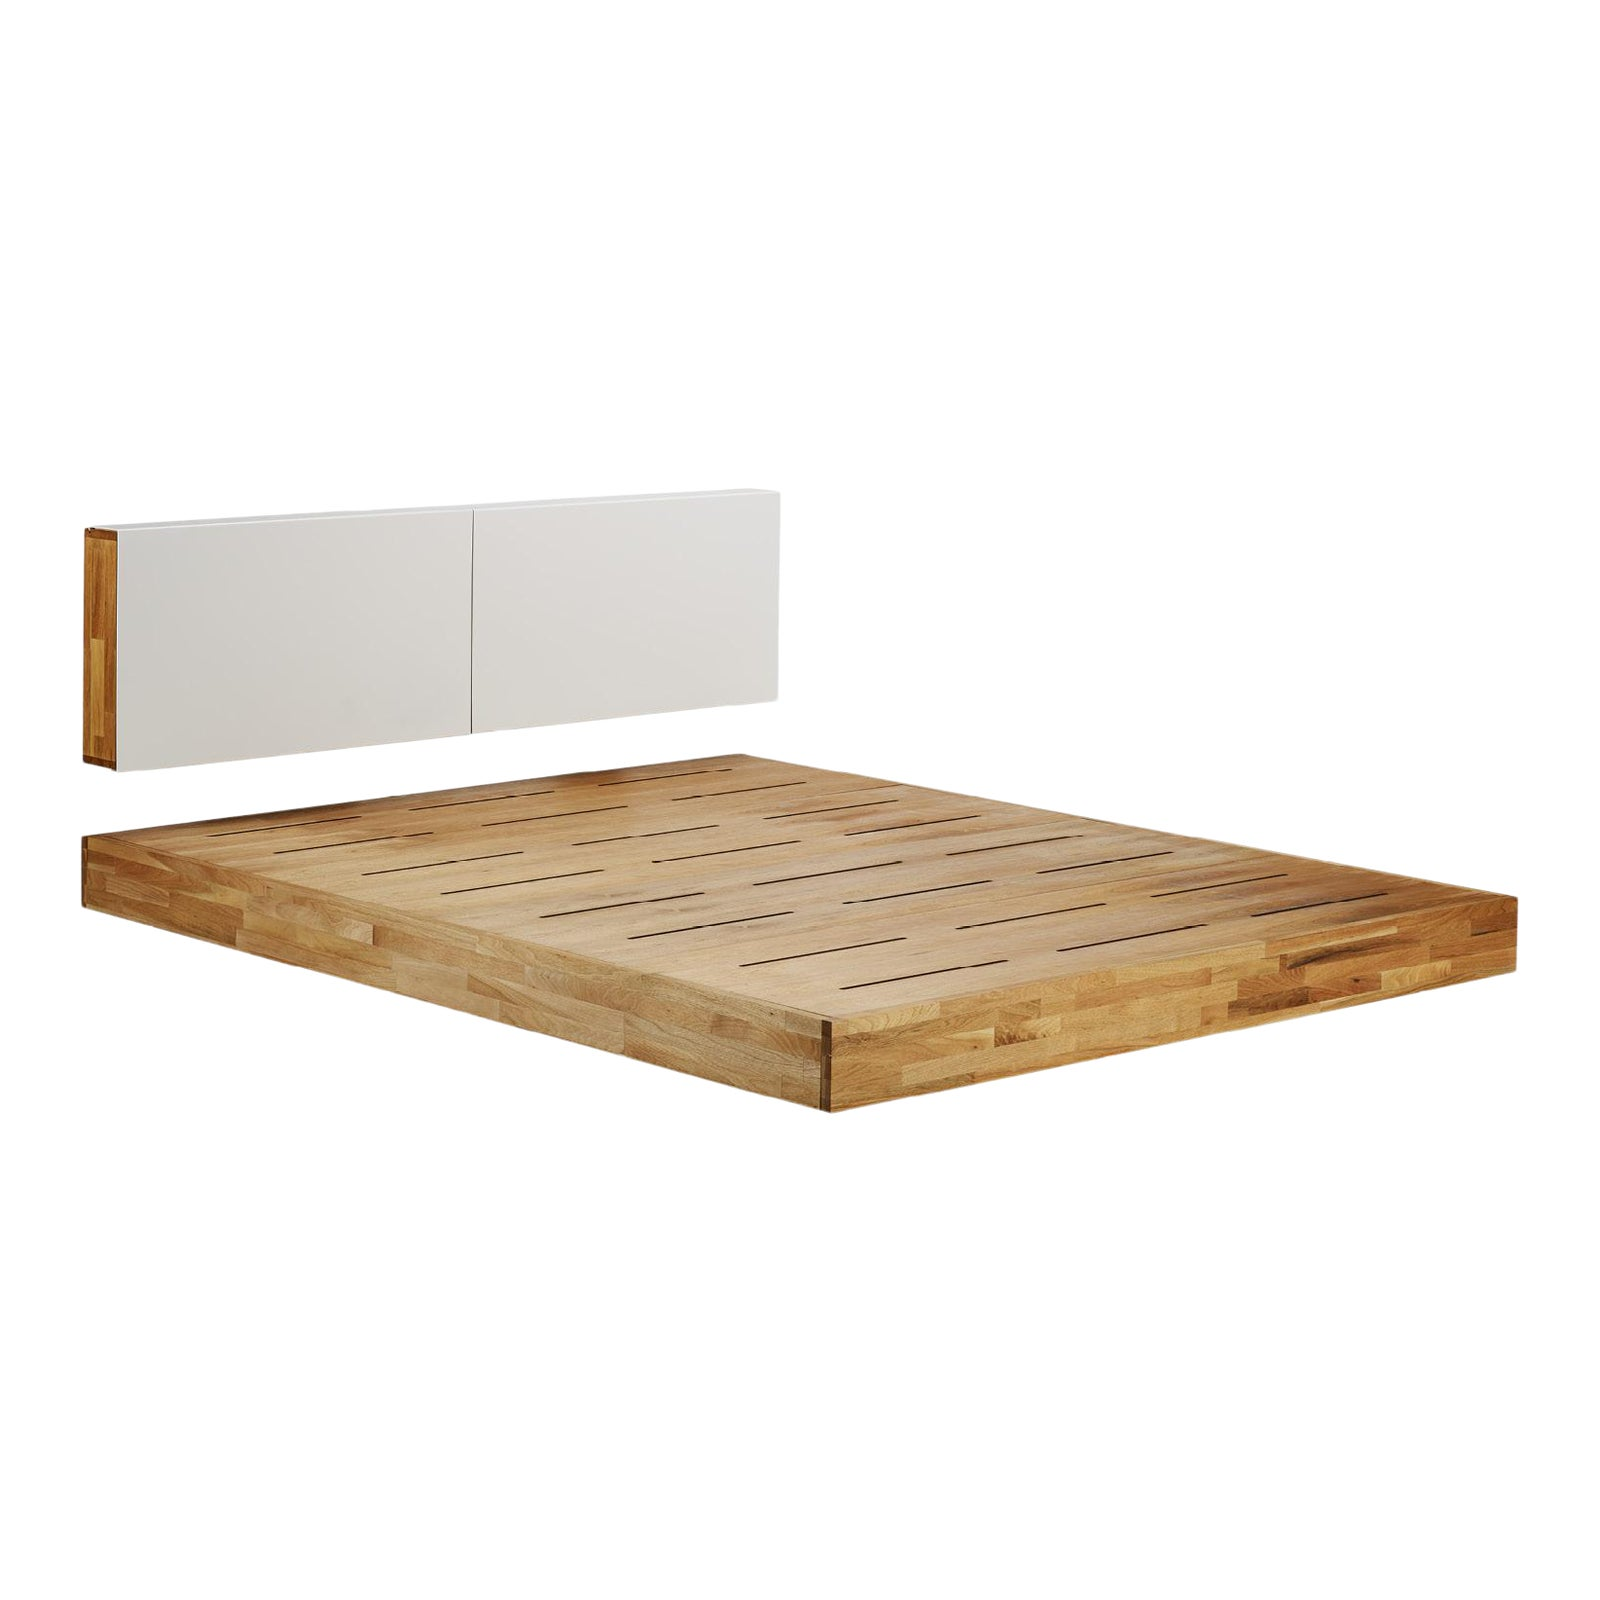 Modern Platform Queen Bed Solid Wood With Wall Hung White Headboard 2 Pieces Chairish